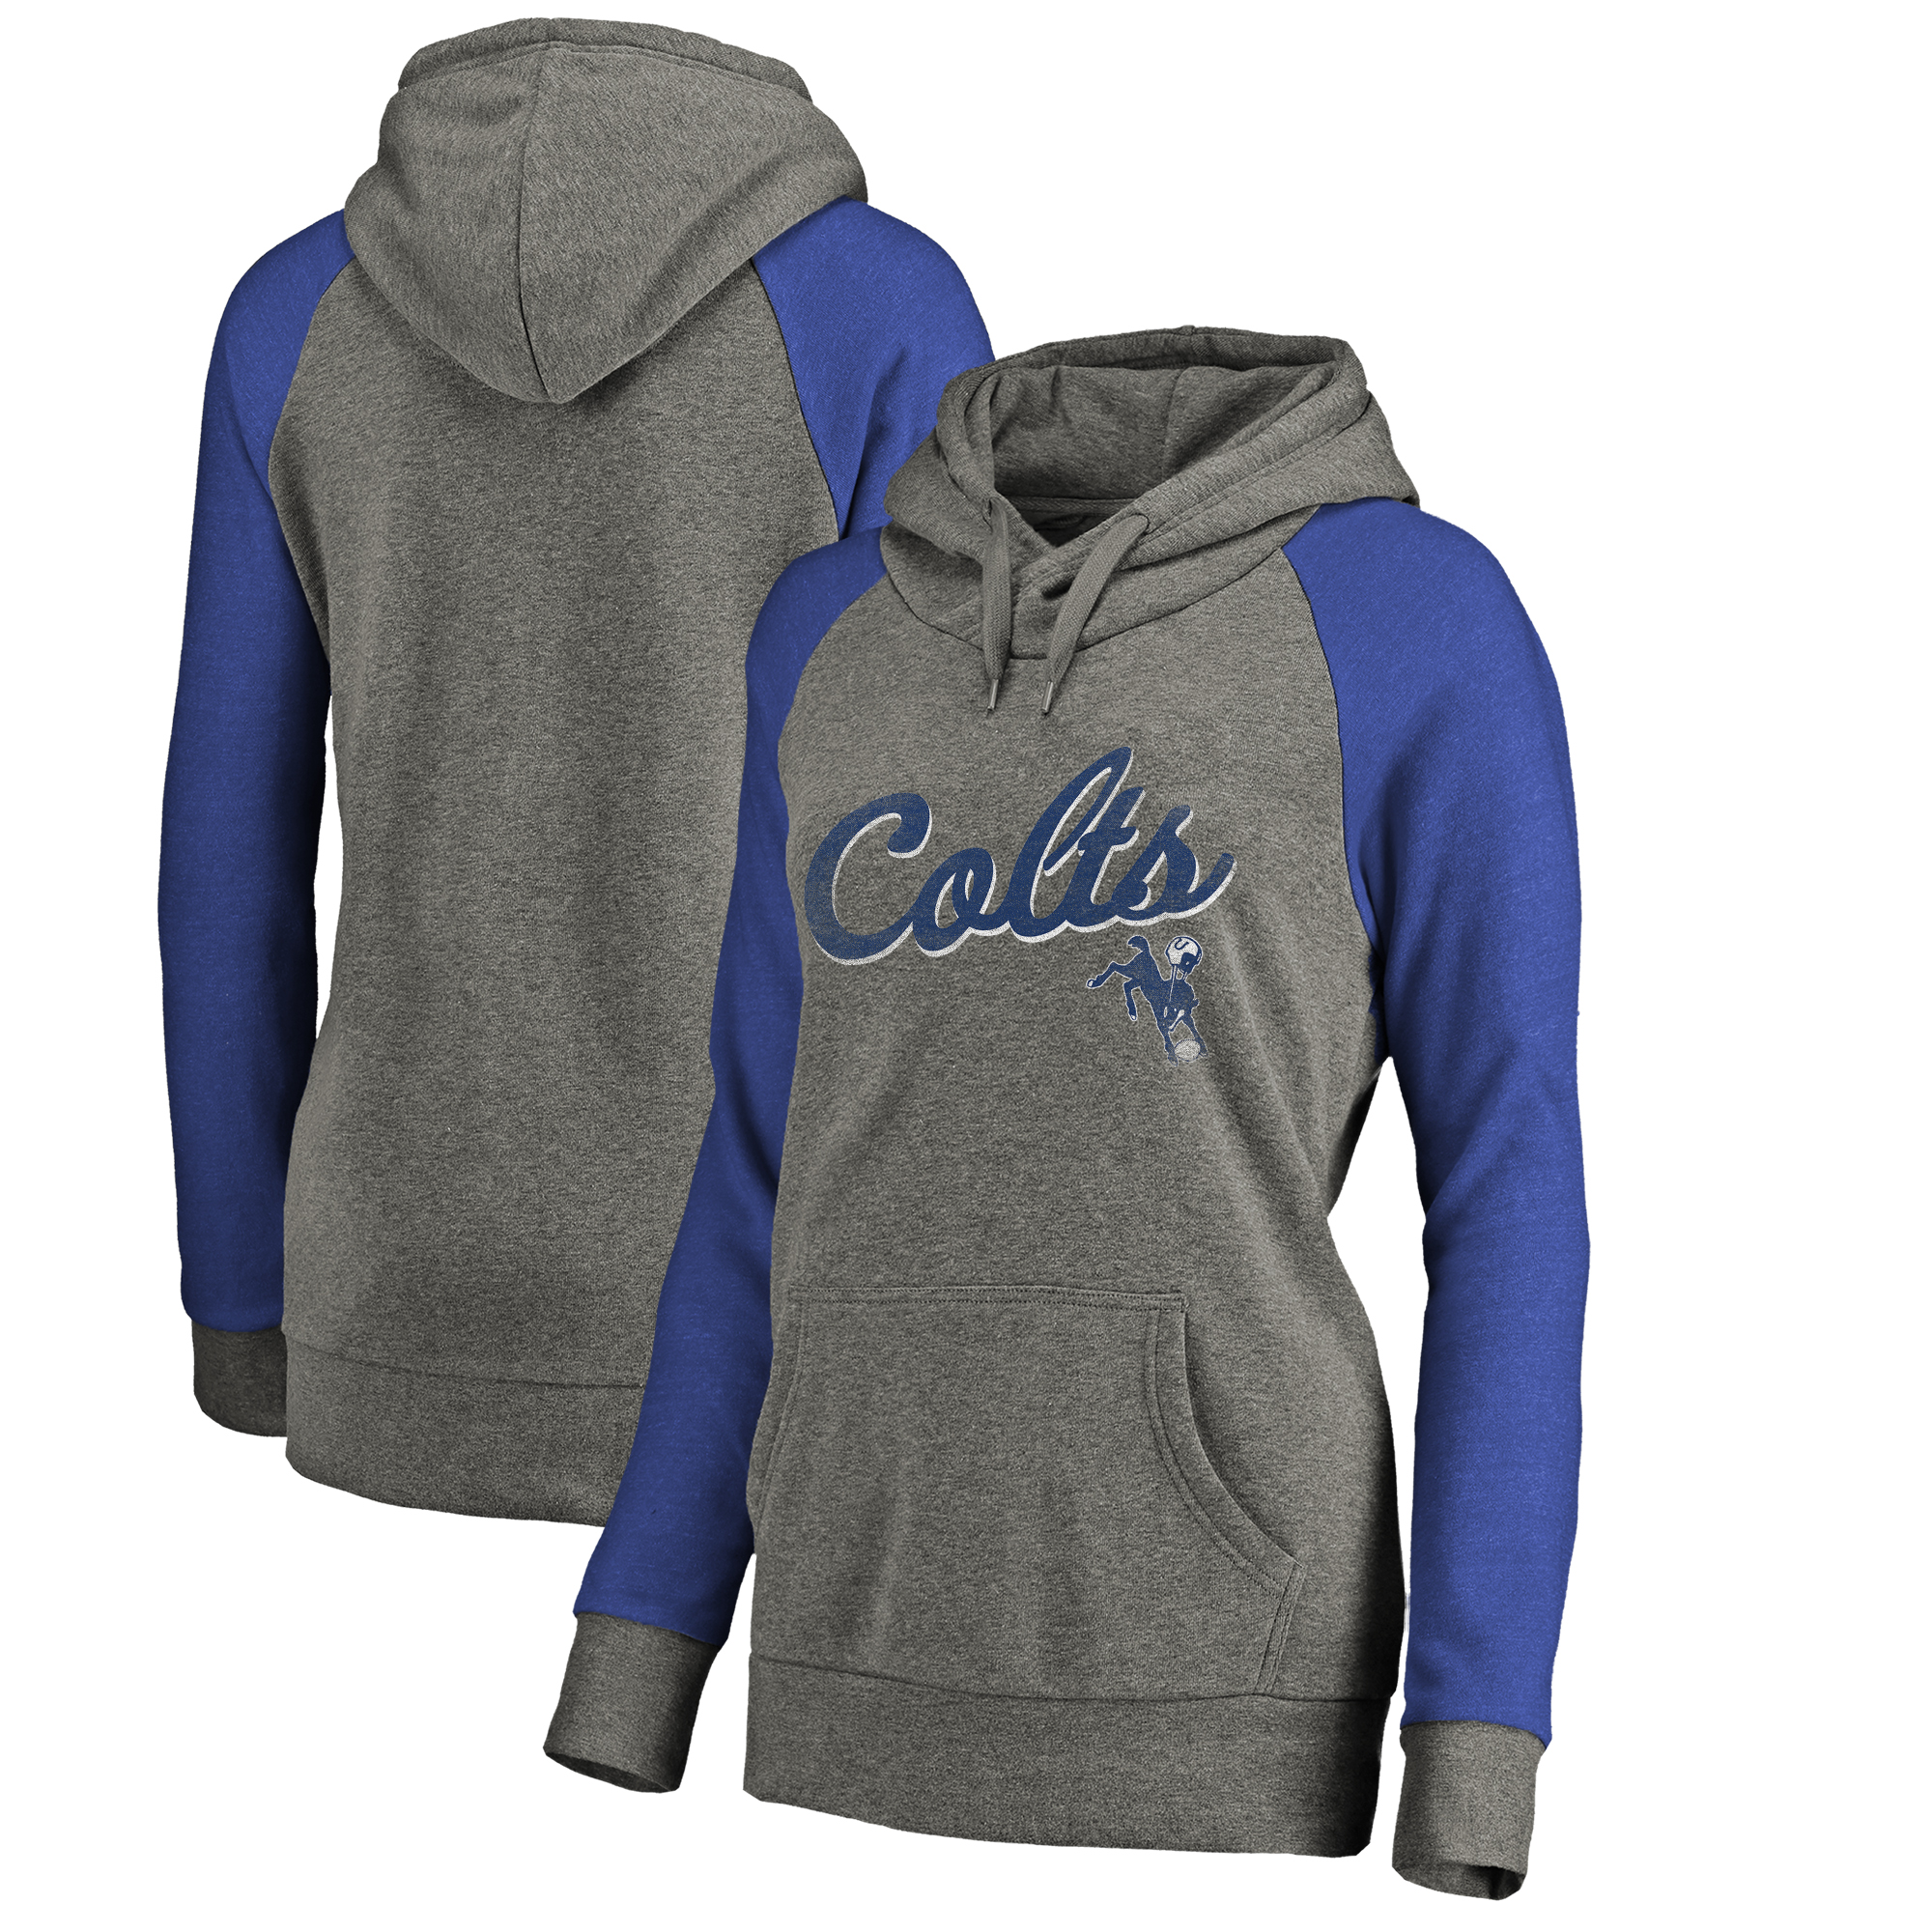 Indianapolis Colts NFL Pro Line by Fanatics Branded Women's Timeless Collection Rising Script Plus Size Tri-Blend Hoodie - Ash